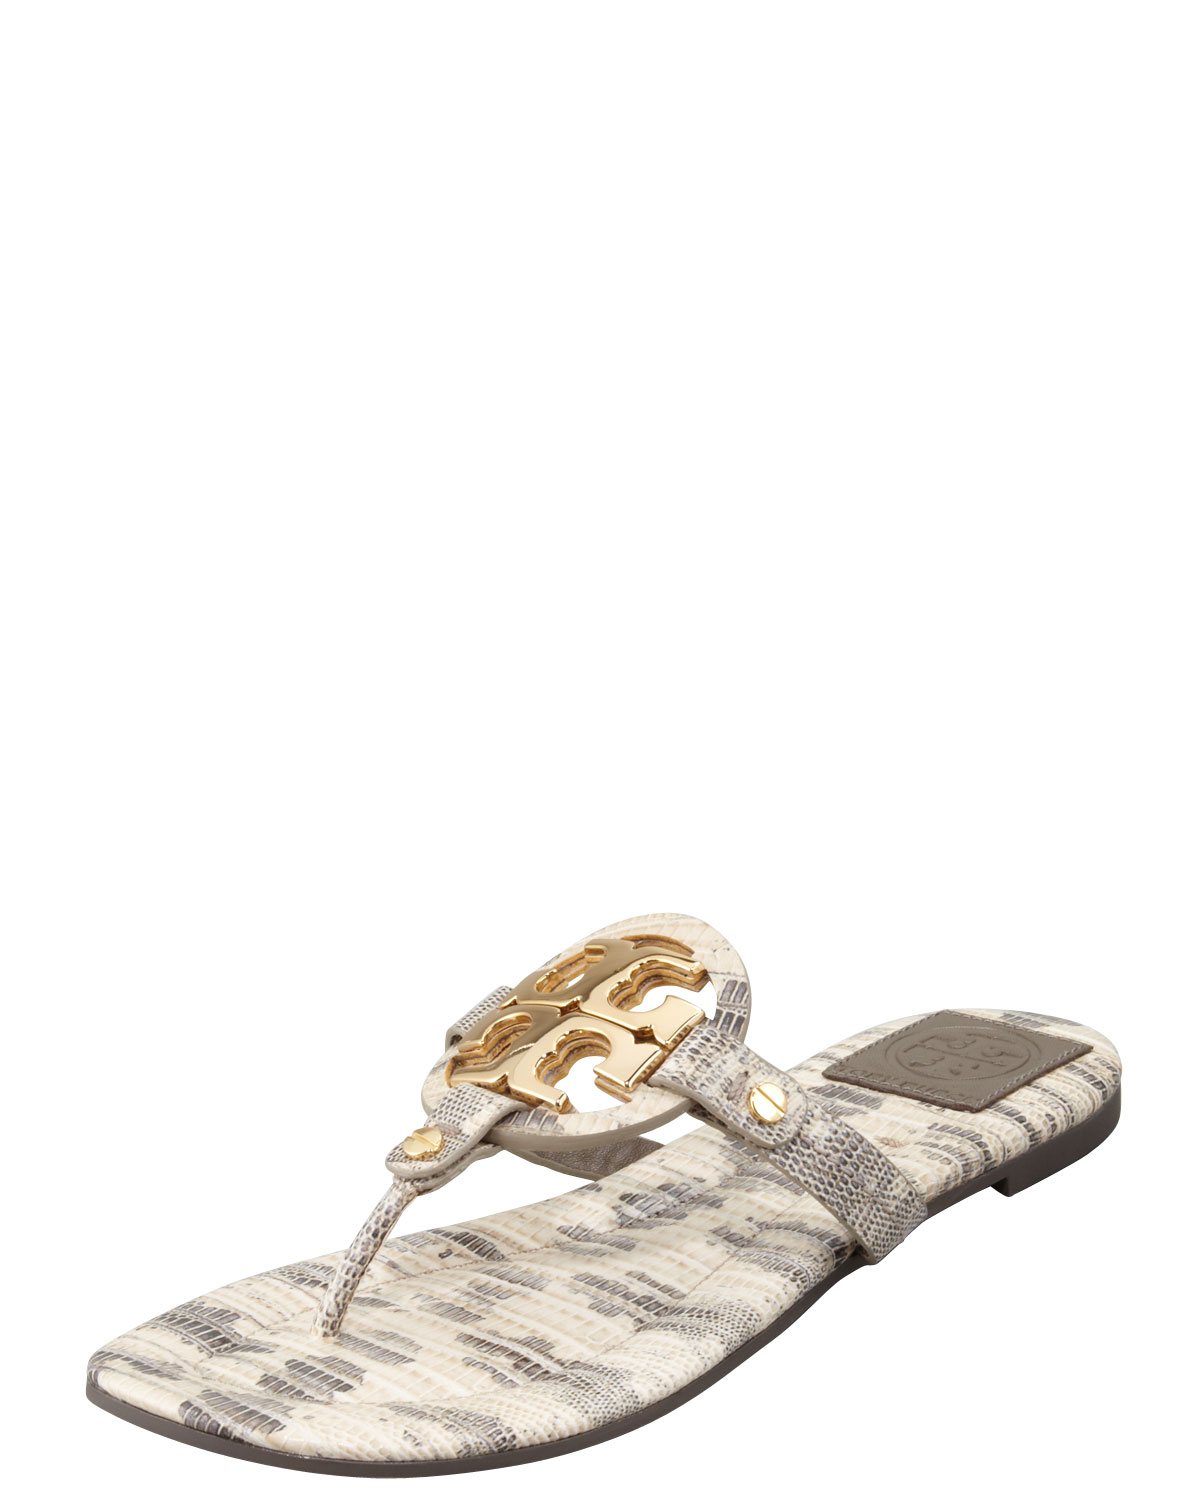 f299be6a4f4f5d Lyst - Tory Burch Miller2 Snakeprint Thong Sandal Natural in Metallic